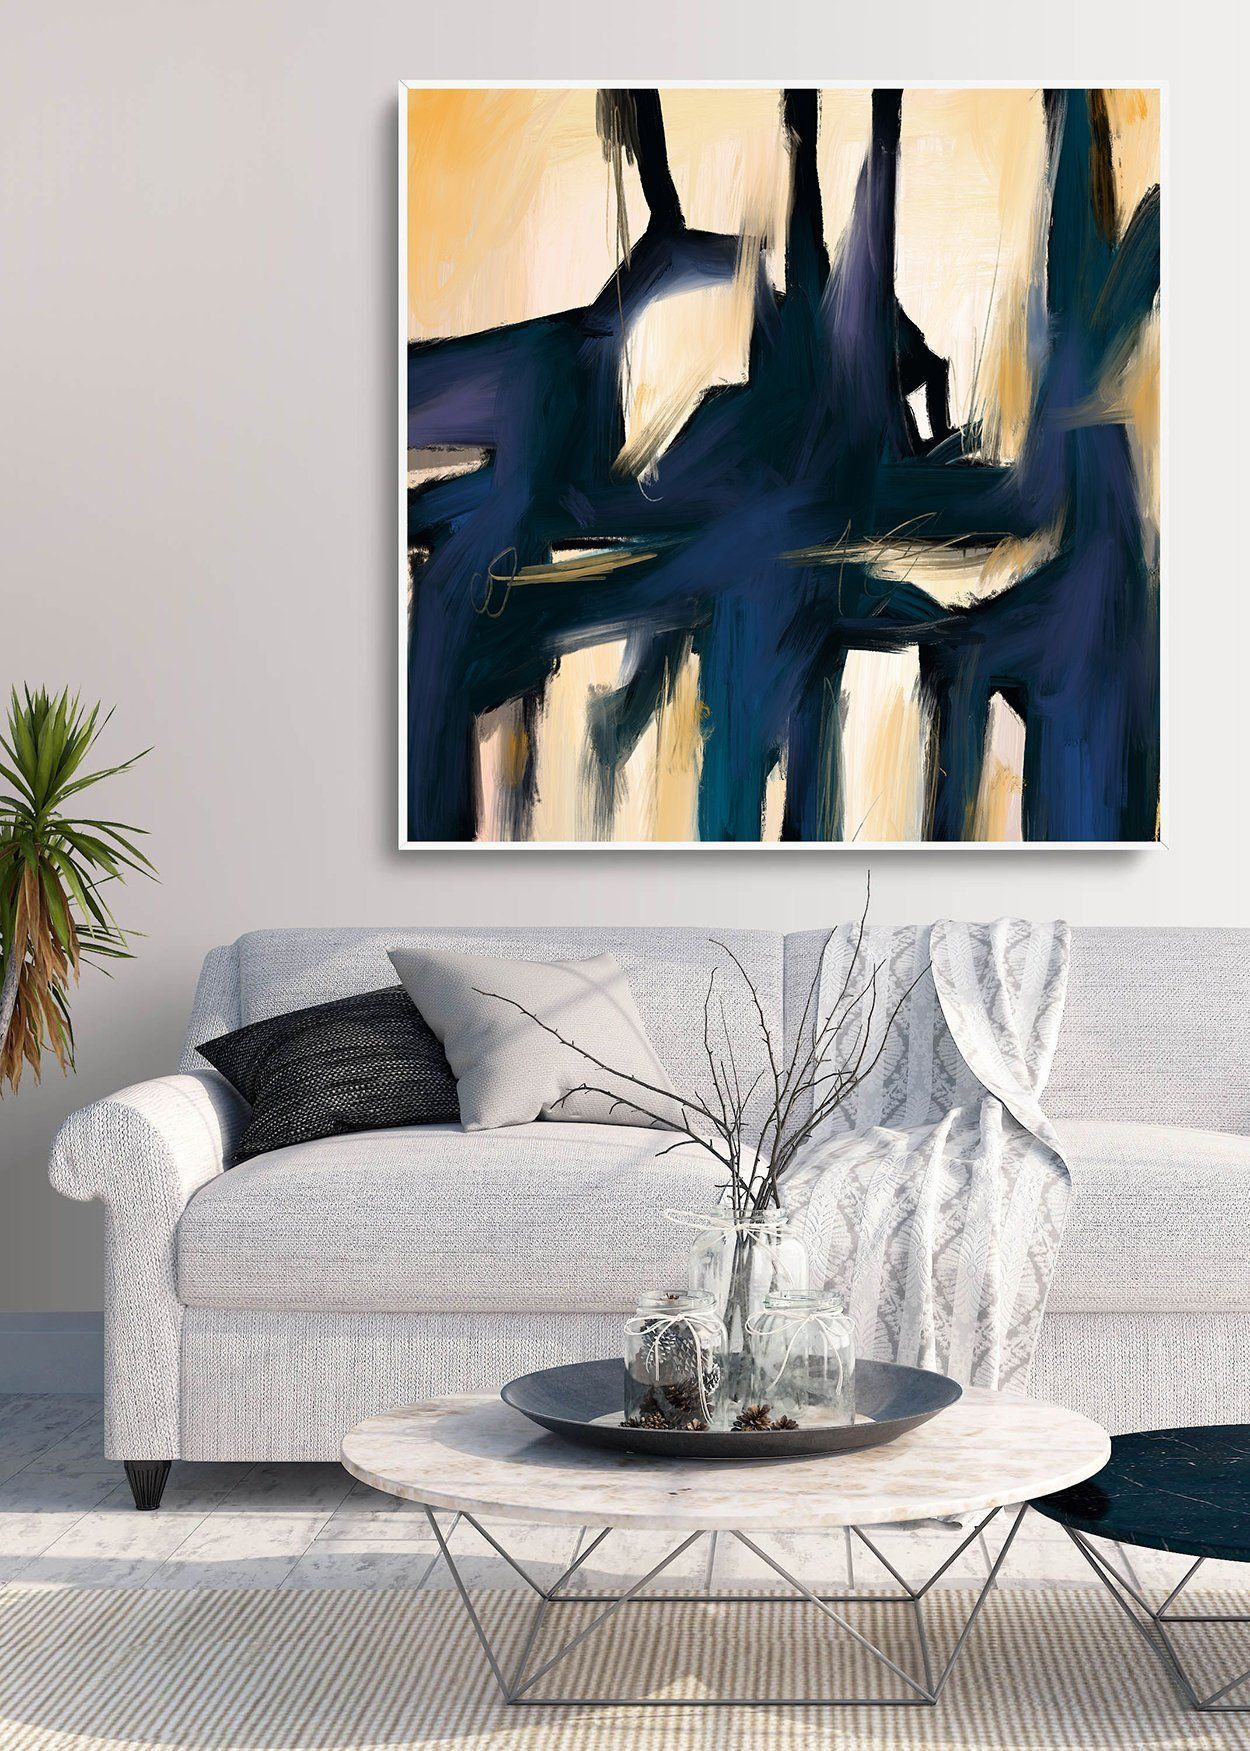 Extra Large Wall Artminimal Abstract Paintingcontemporary Etsy Abstract Art Painting Contemporary Abstract Art Contemporary Wall Art #wall #art #painting #for #living #room